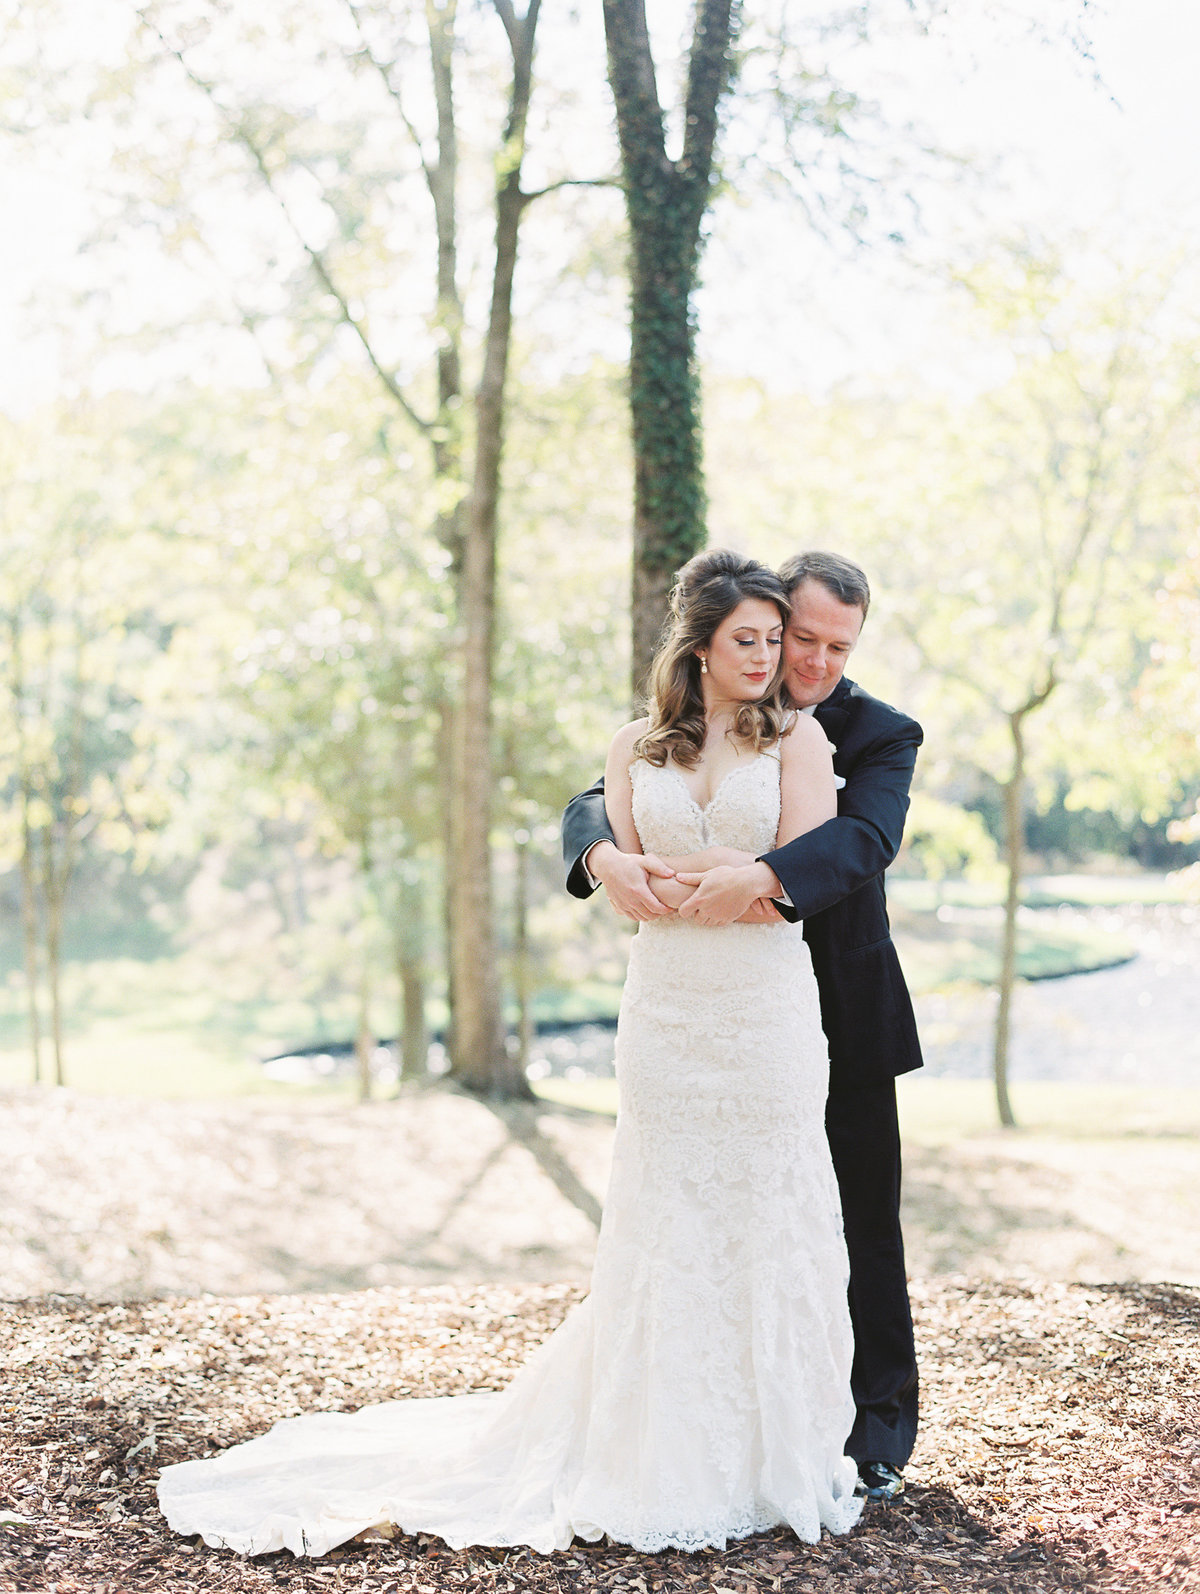 693_Anne & Ryan Wedding_Lindsay Vallas Photog